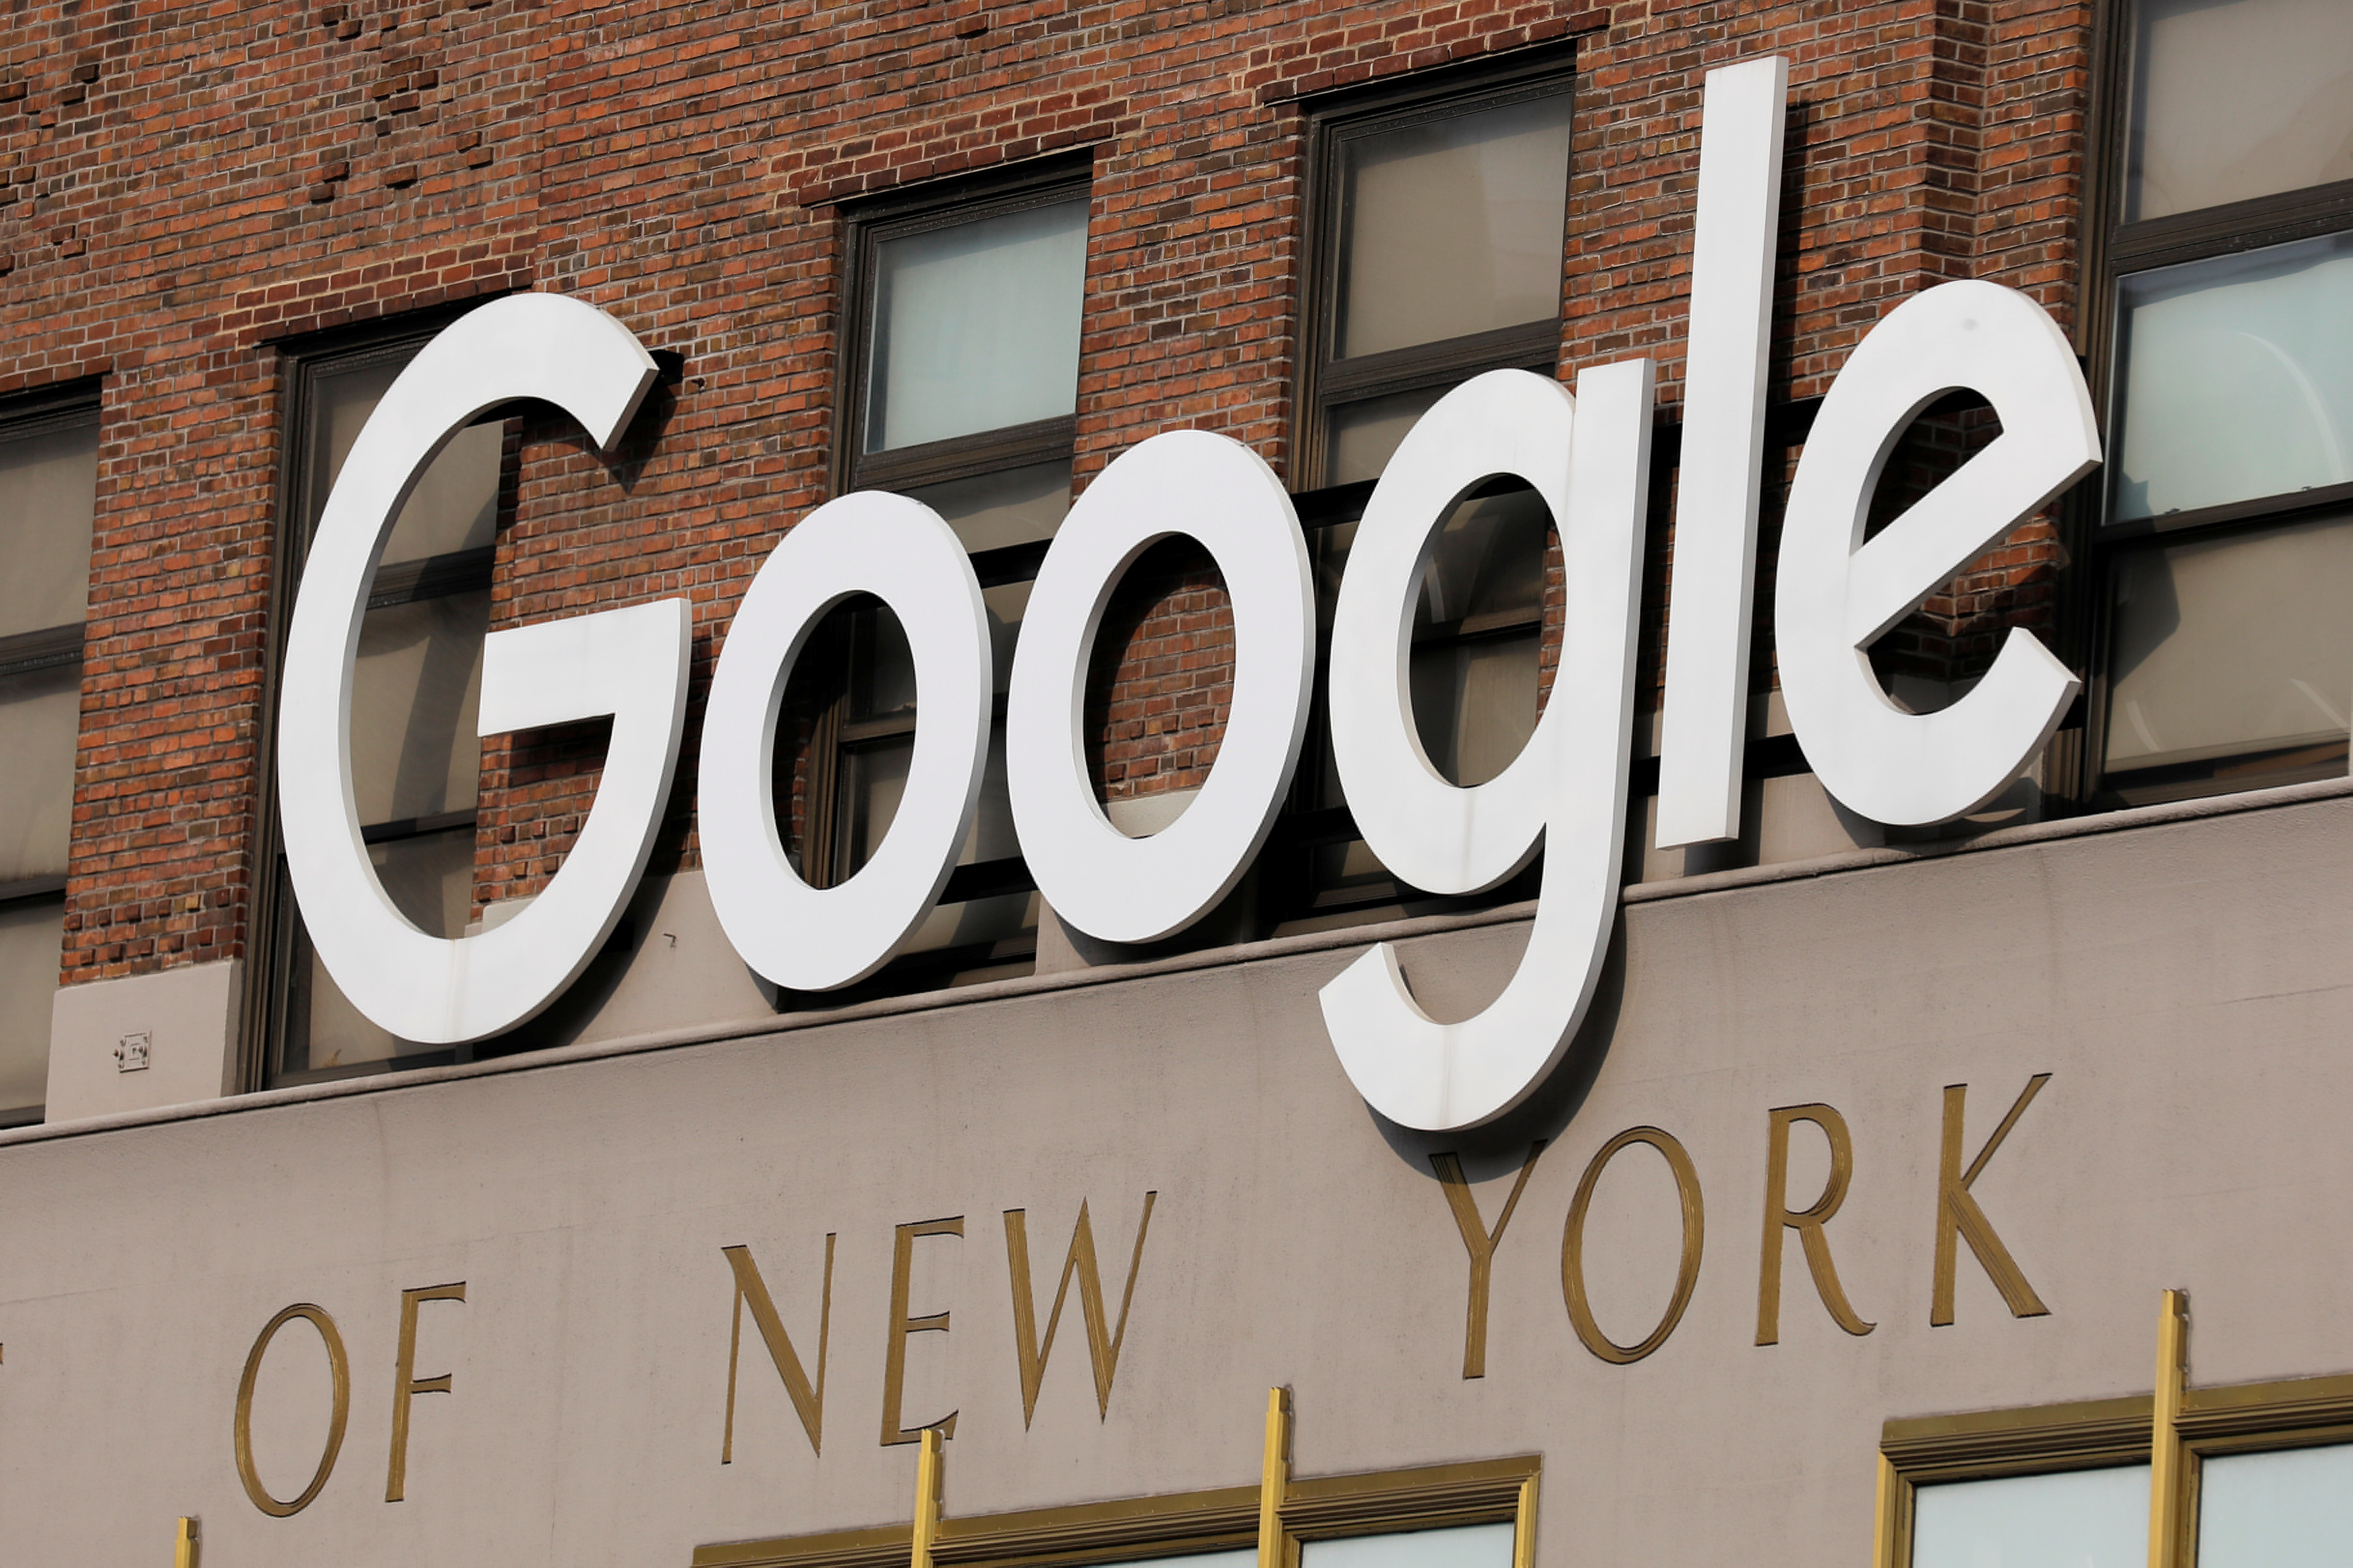 A logo is seen on the New York Google offices after they announced they will postpone their reopening in response to updated CDC guidelines during the outbreak of the coronavirus disease (COVID-19) in Manhattan, New York City, U.S., July 29, 2021. REUTERS/Andrew Kelly